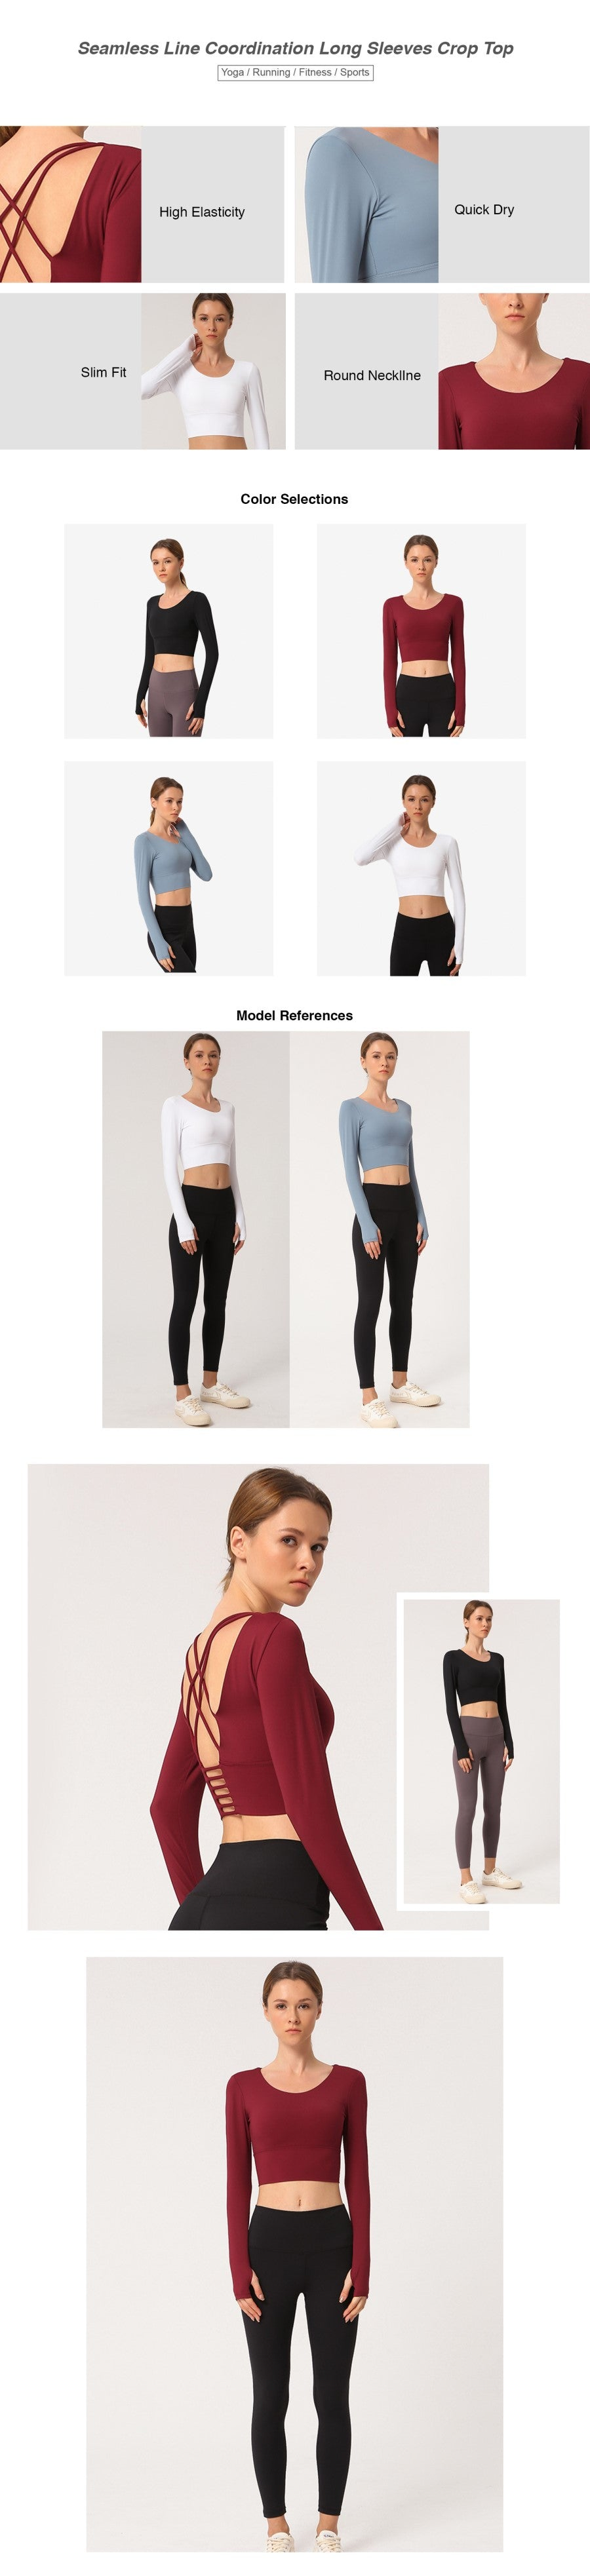 Seamless Line Coordination Long Sleeves Crop Top